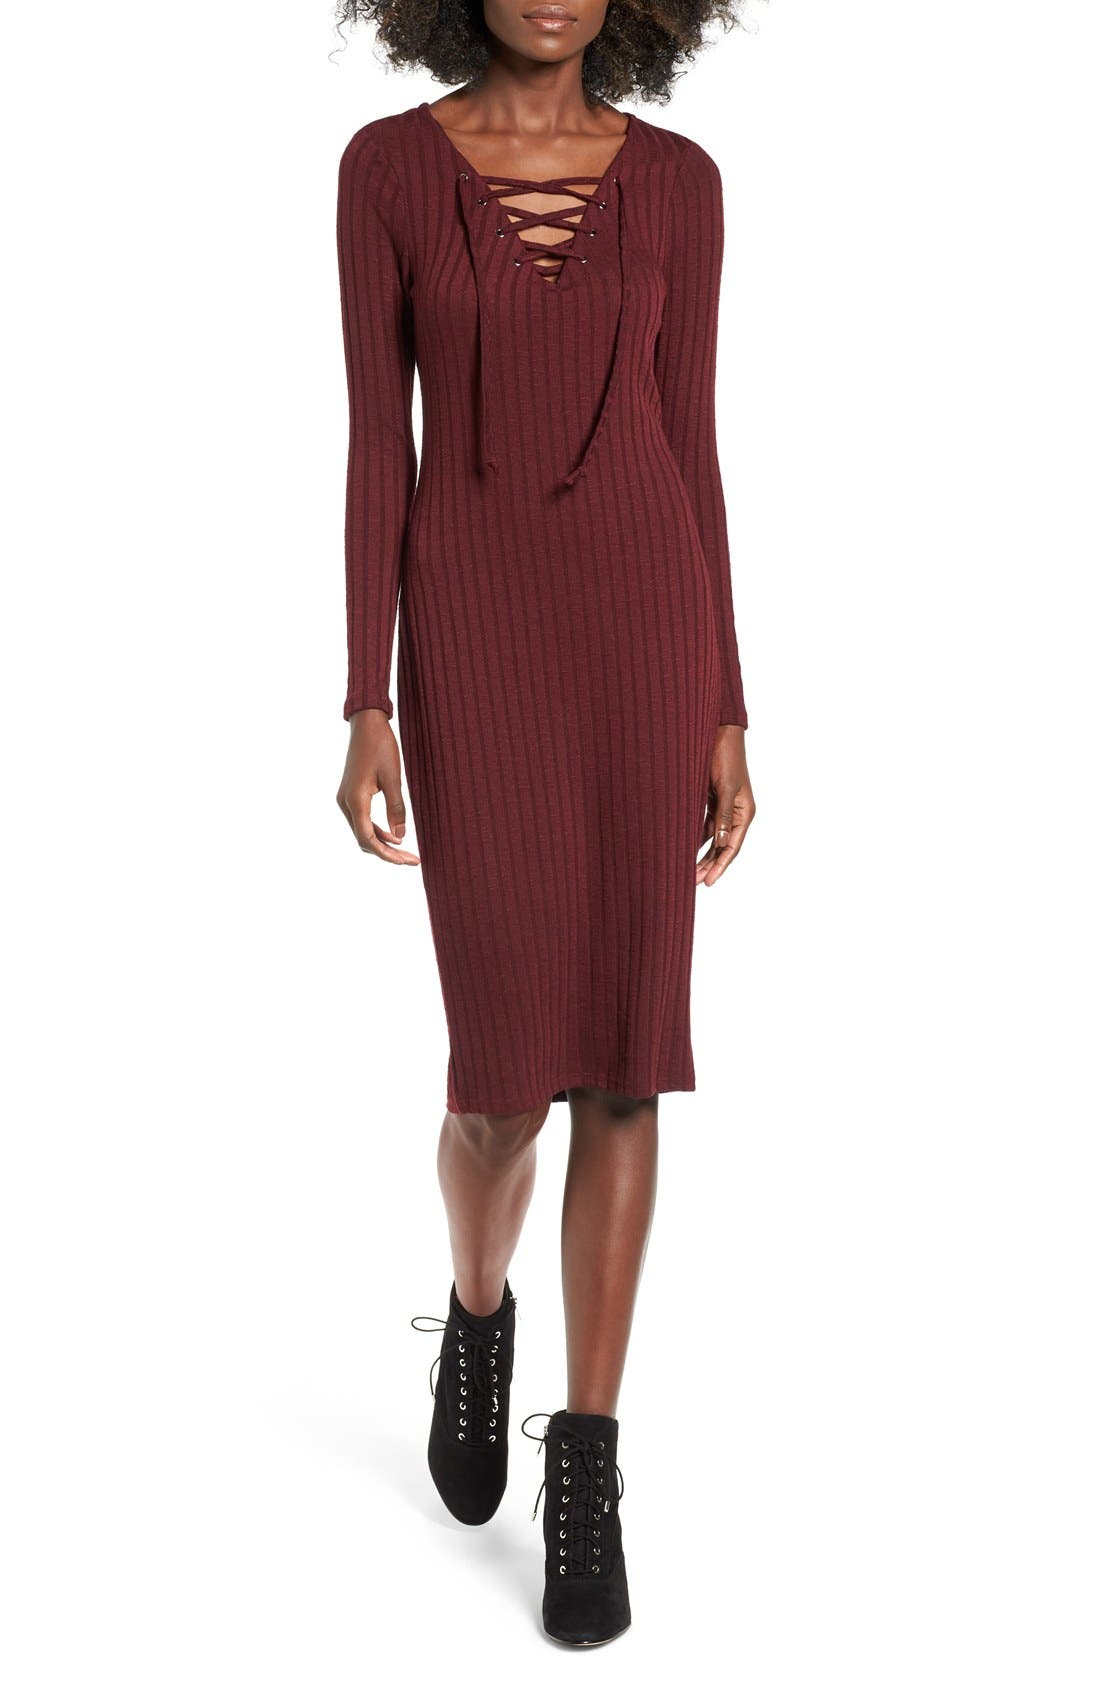 Alternate Image 1 Selected - Love, Fire Lace-Up Rib Knit Dress